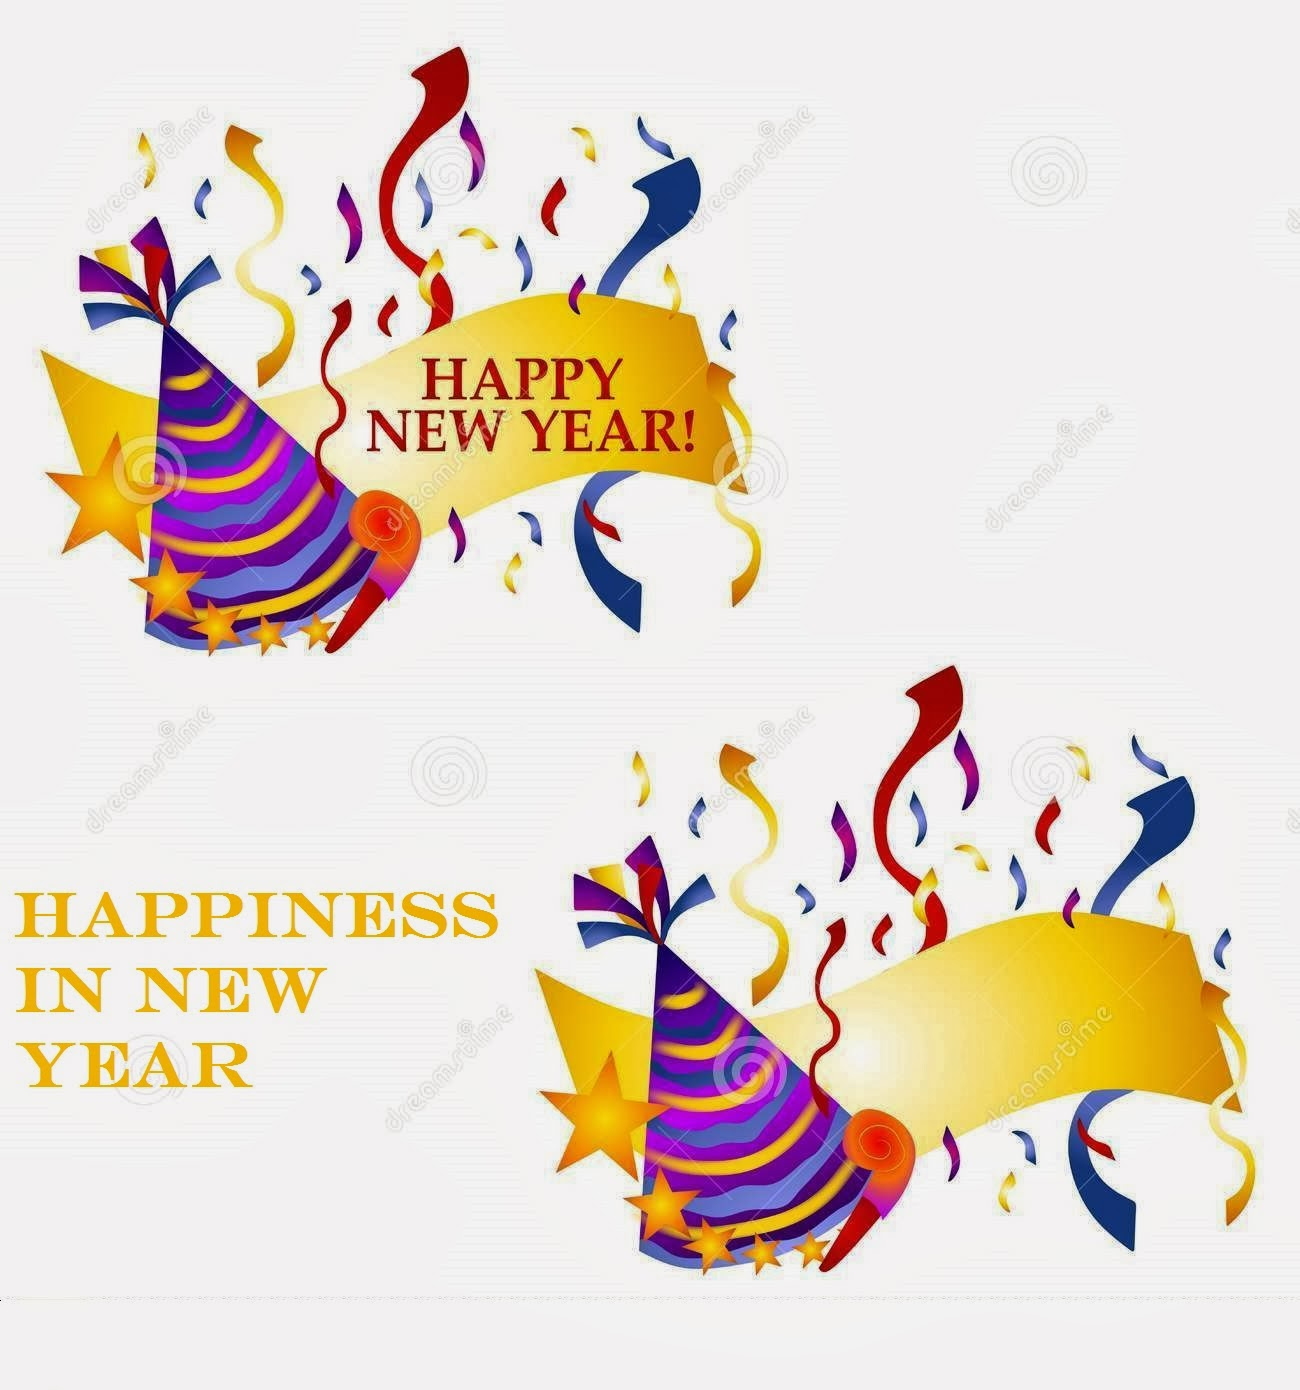 Best Happy New Year Clip Art And Messages 2015 - Free Quotes, Poems ...